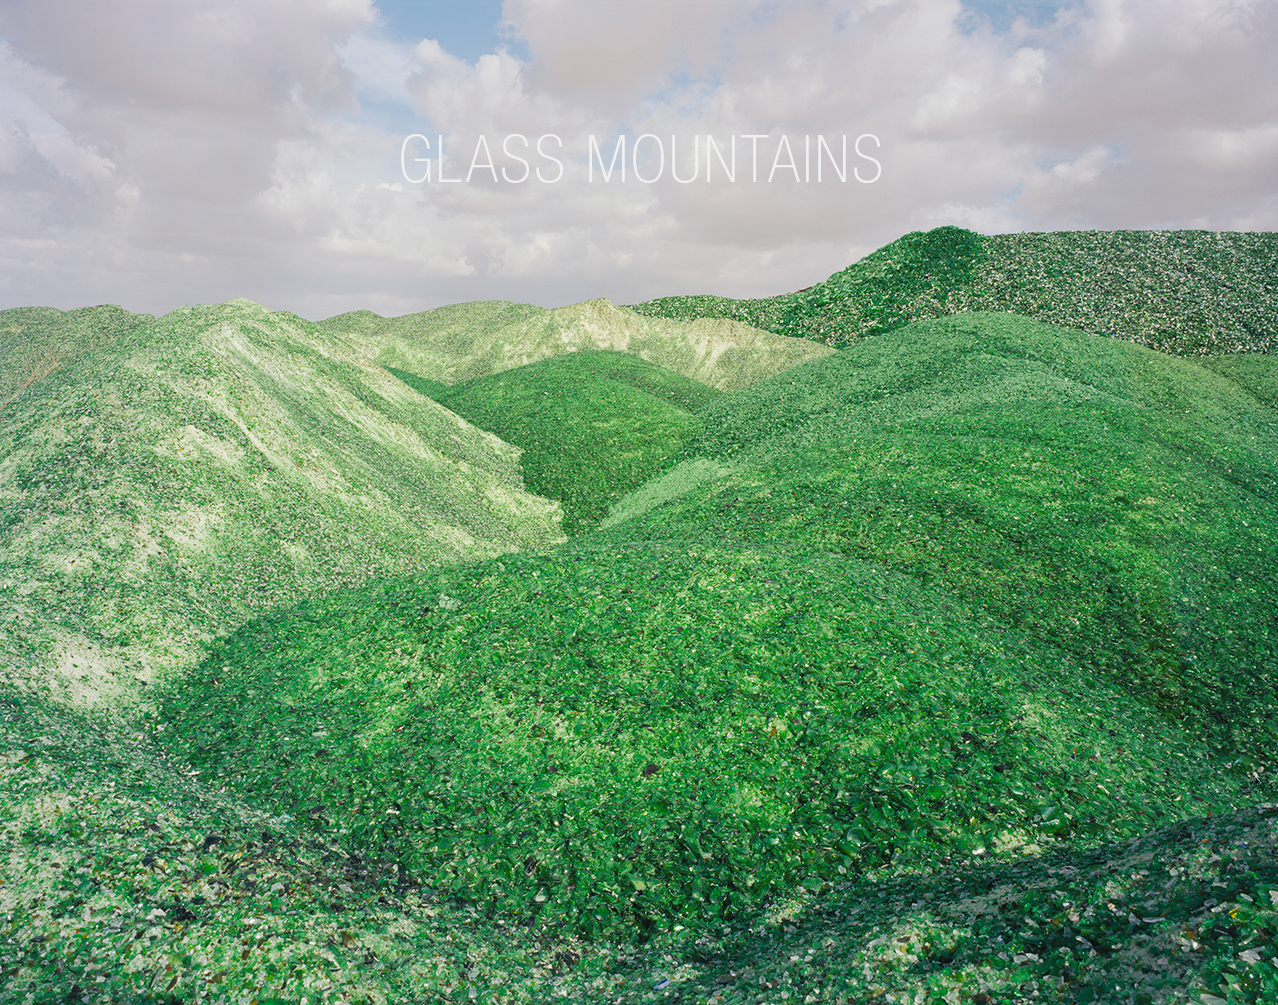 GLASS MOUNTAINS